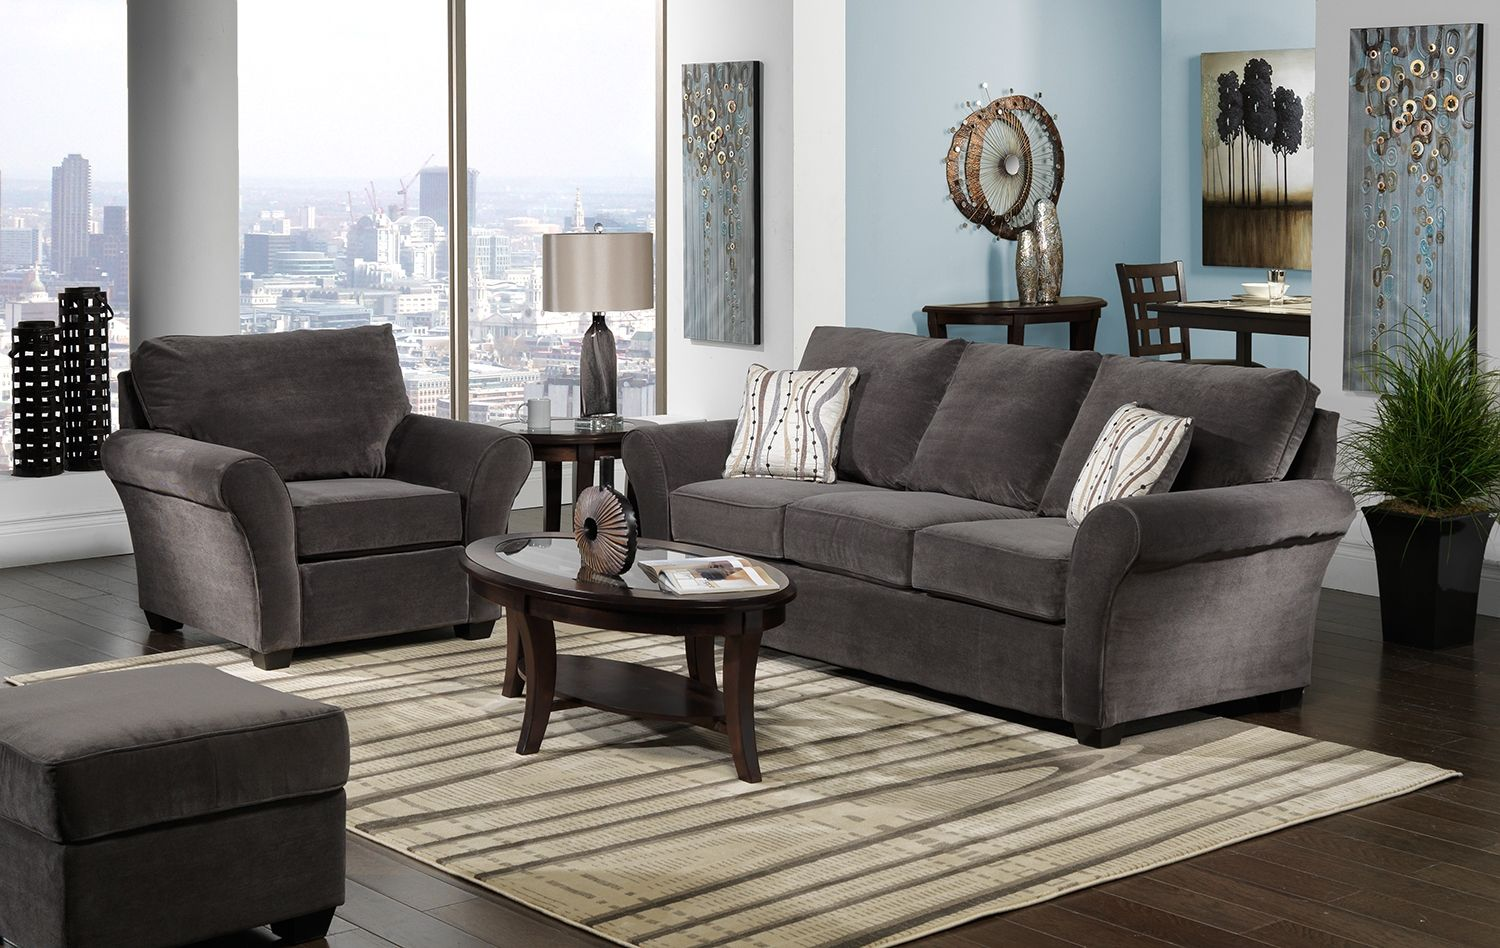 chester upholstery collection  leon's  furniture living